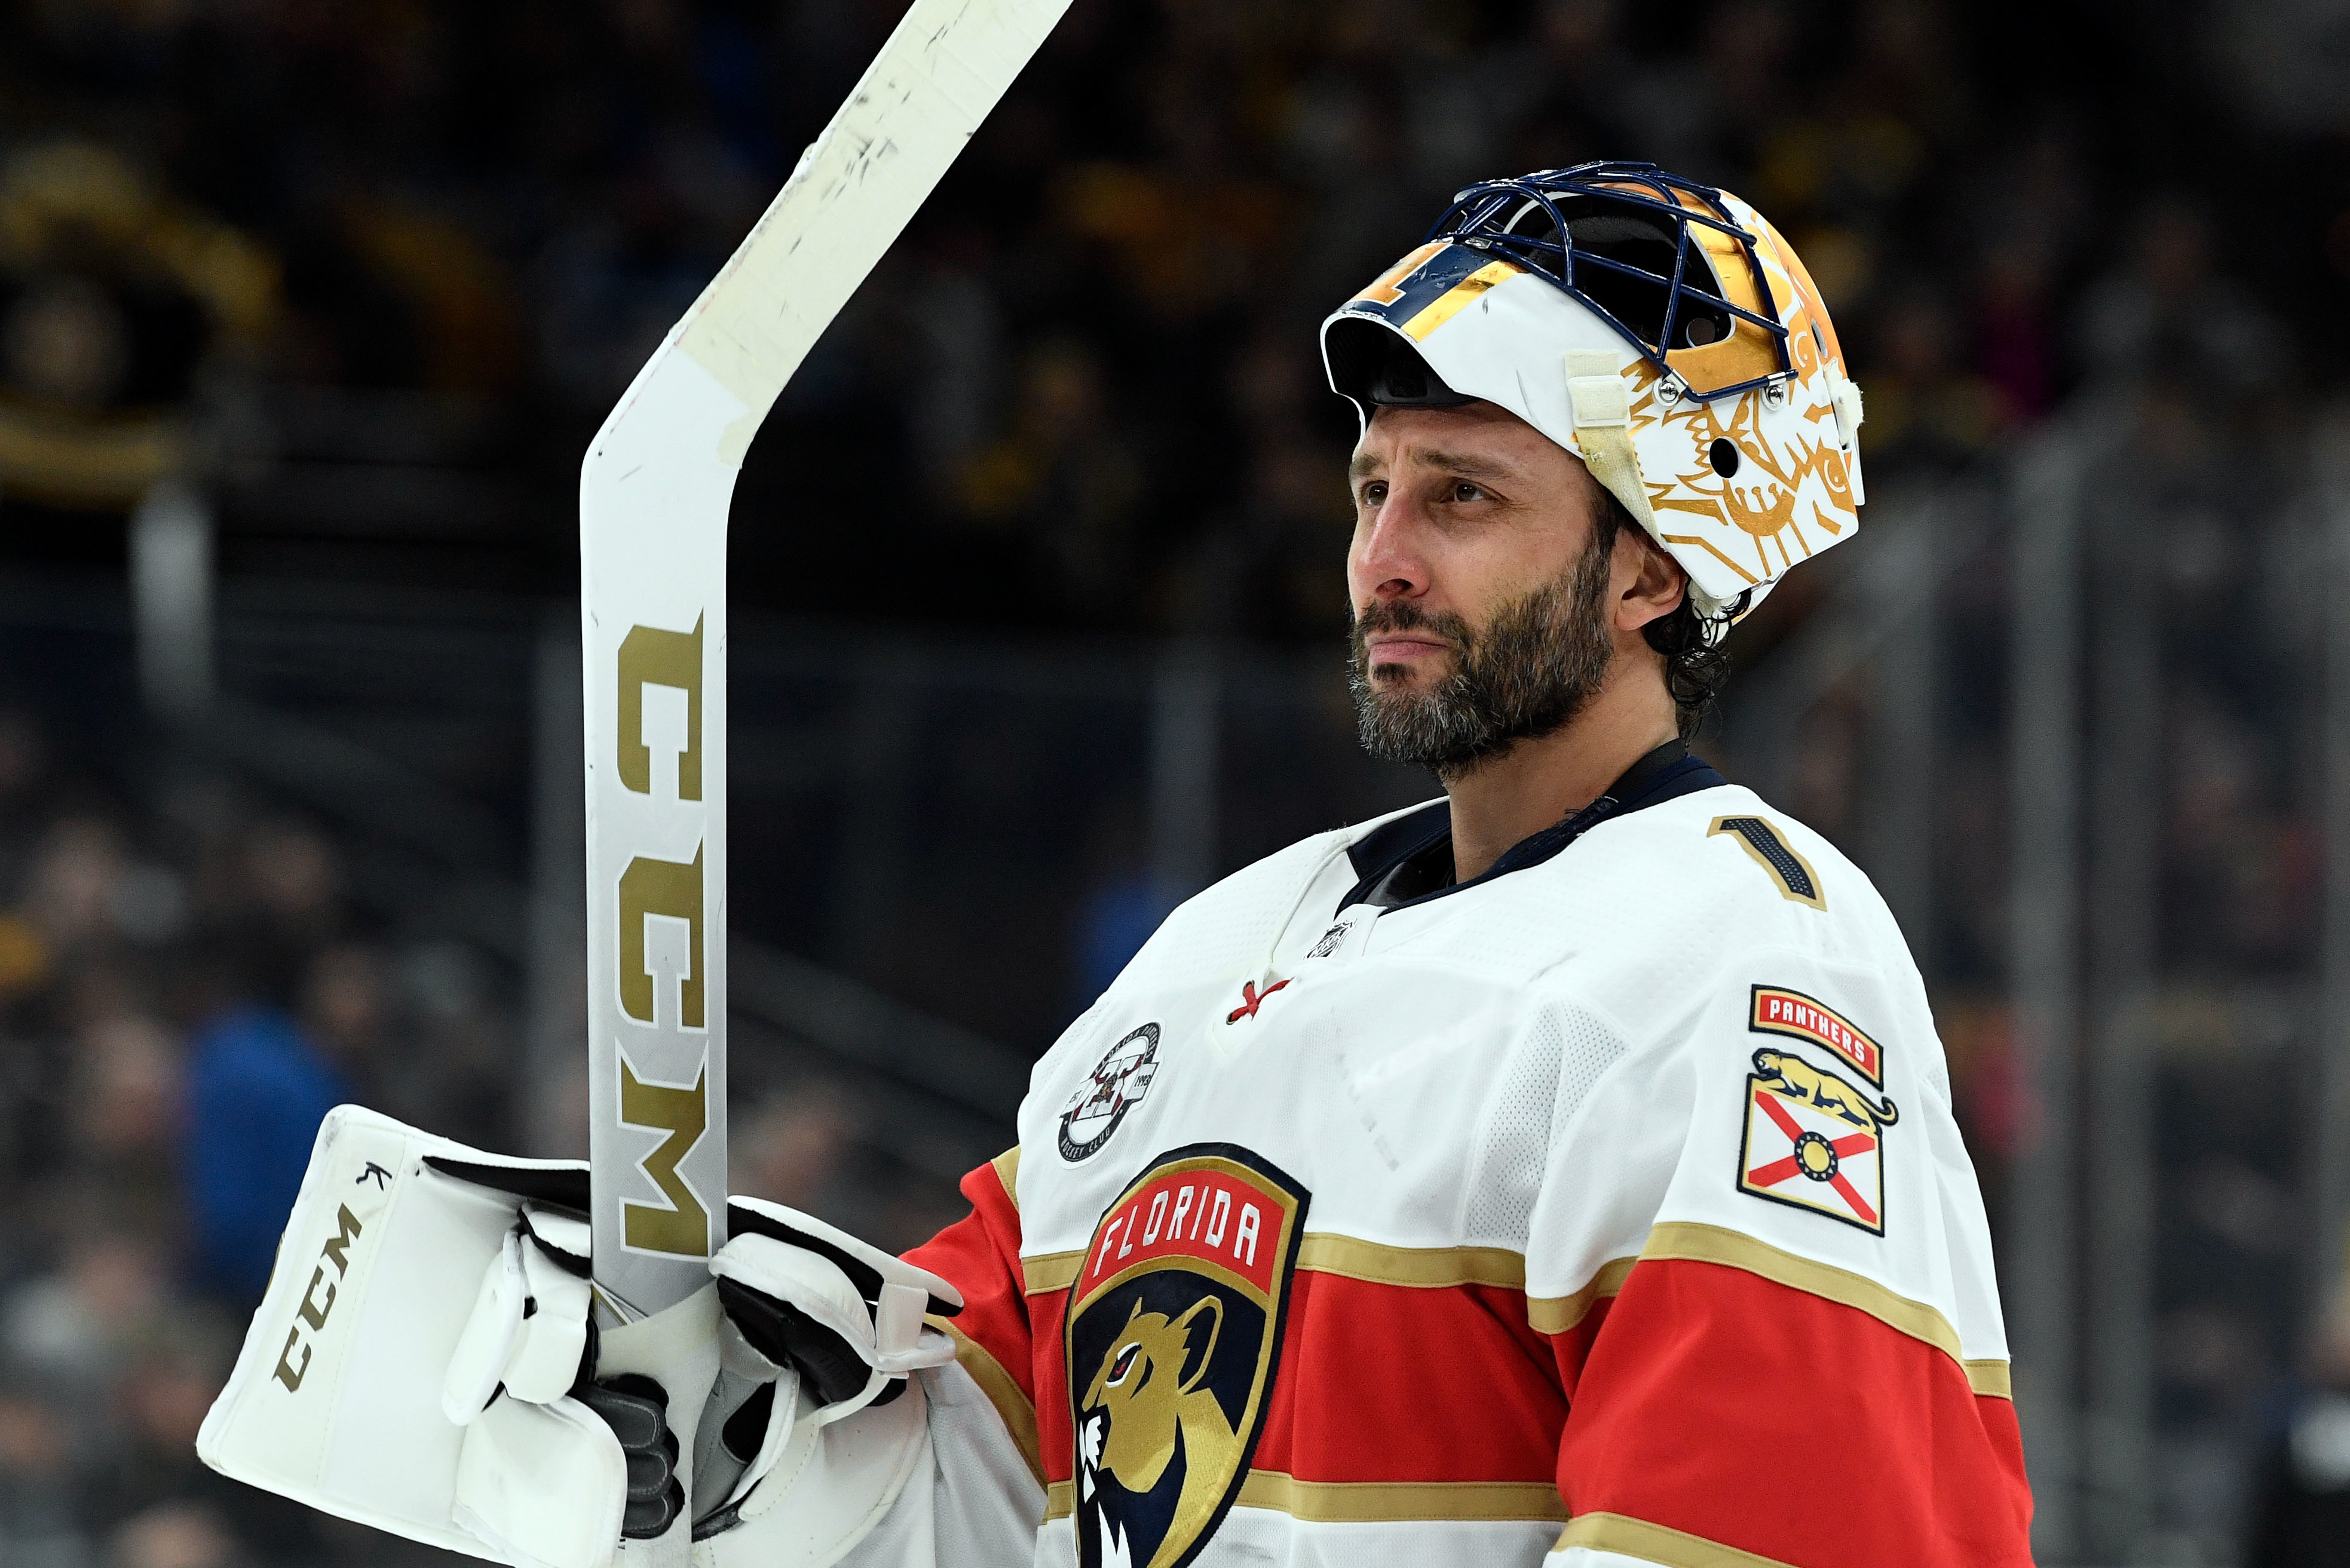 Former Canucks Goalie Roberto Luongo Announces Nhl Retirement After